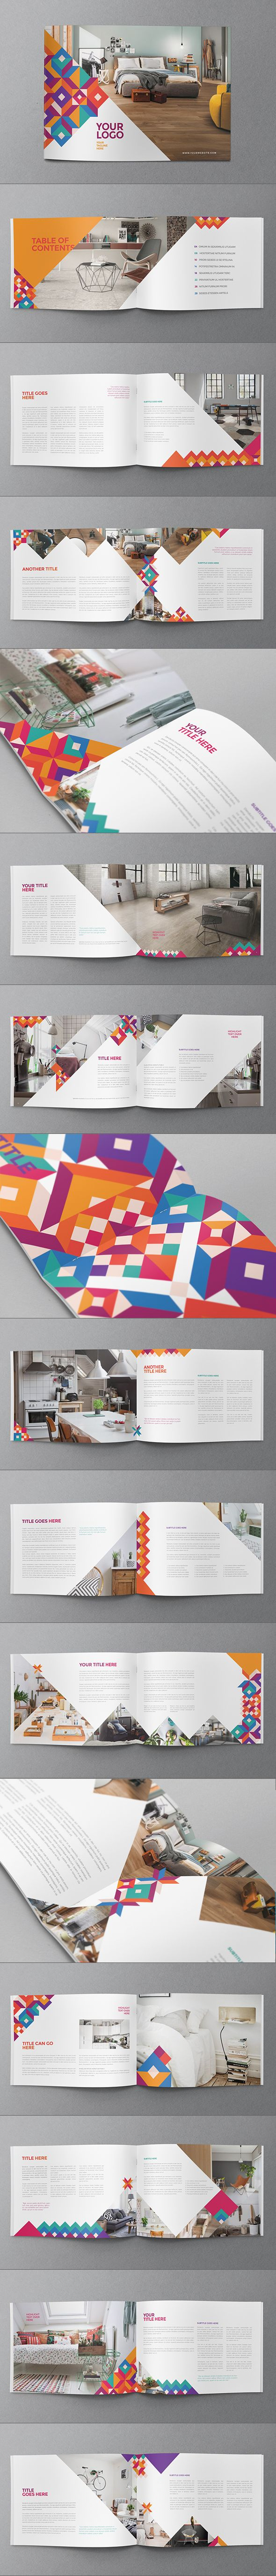 Colorful Cool Pattern Brochure. Download here: http://graphicriver.net/item/colorful-cool-pattern-brochure/12862171?ref=abradesign